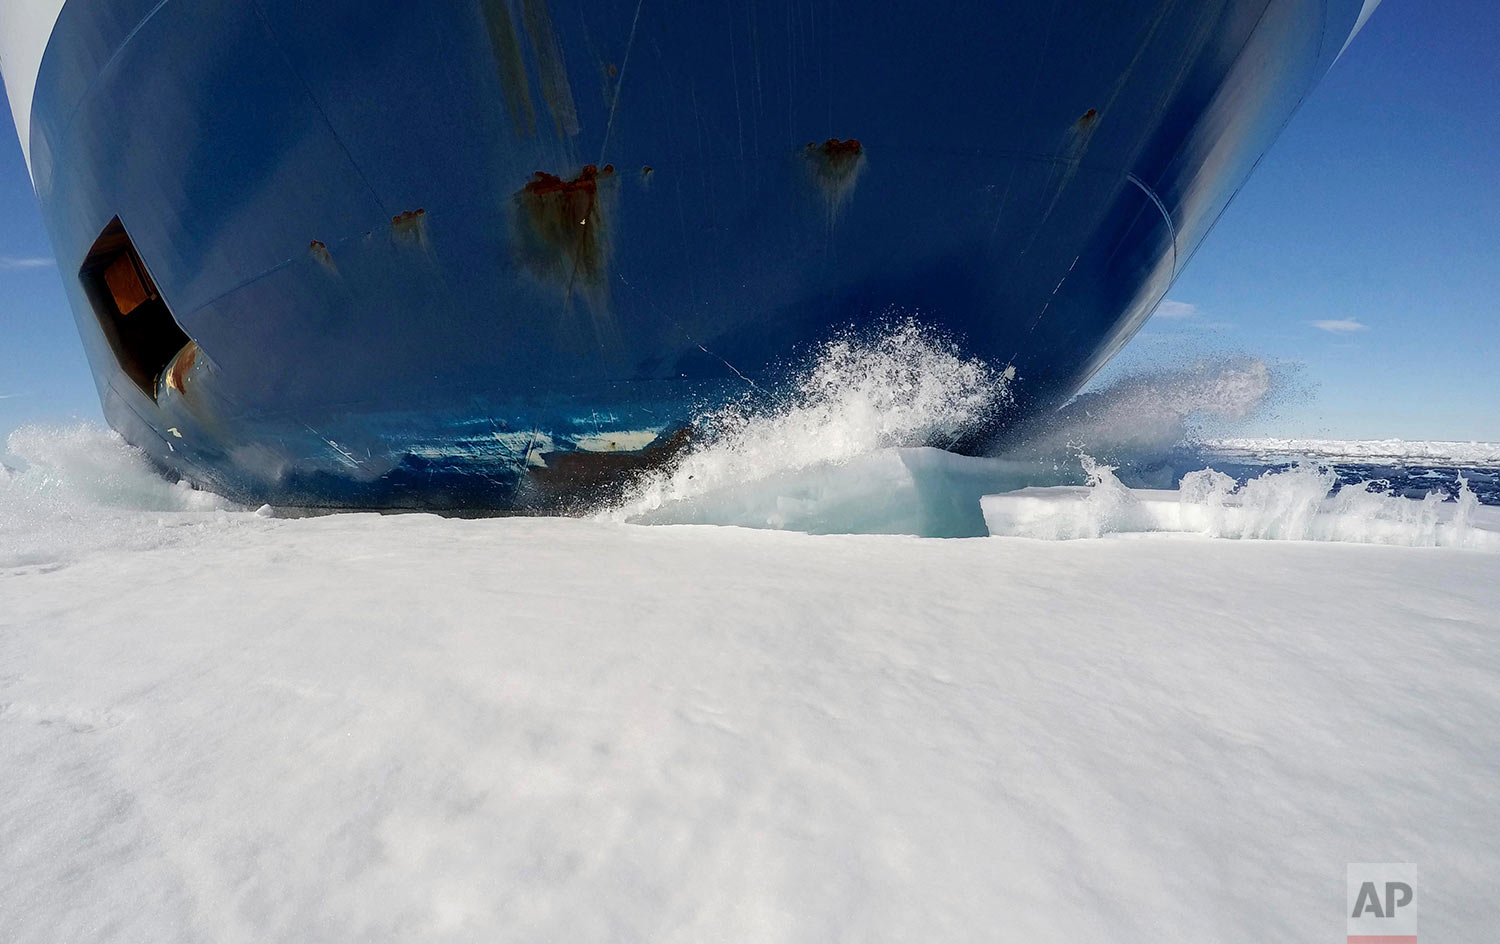 The bow of the Finnish icebreaker MSV Nordica drives through sea ice as it sails the Victoria Strait while traversing the Arctic's Northwest Passage, Friday, July 21, 2017. The MSV Nordica is equipped with several heavy-duty engines and a hardened bow and hull that allow it either to drive through thin layers of ice or to crush thicker sheets by rising onto the ice with the help of its rounded hull. The ship's massive weight breaks the ice from above. (AP Photo/David Goldman)